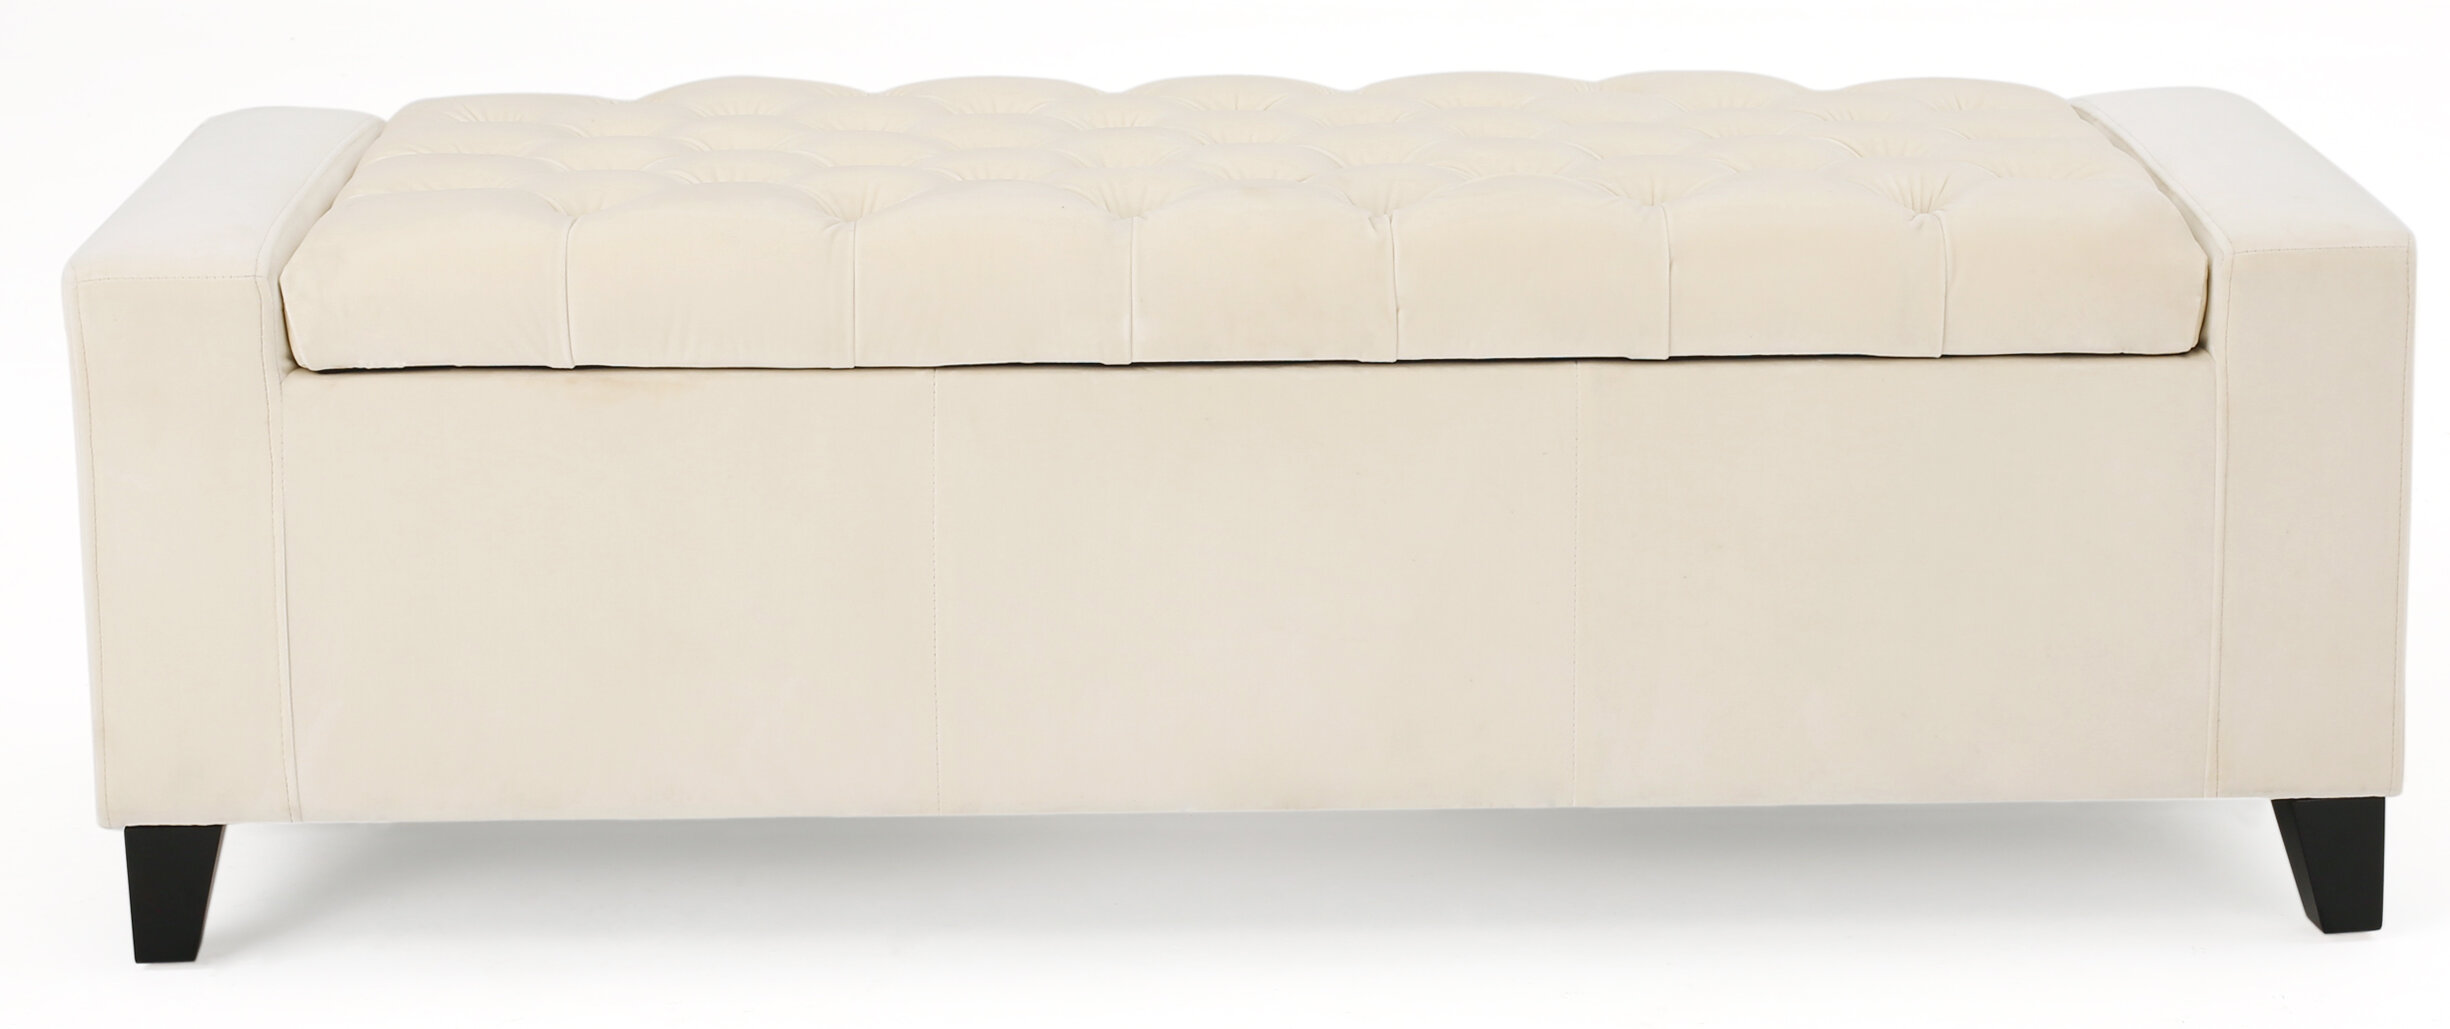 Prime Ilchester Upholstered Storage Bench Pdpeps Interior Chair Design Pdpepsorg